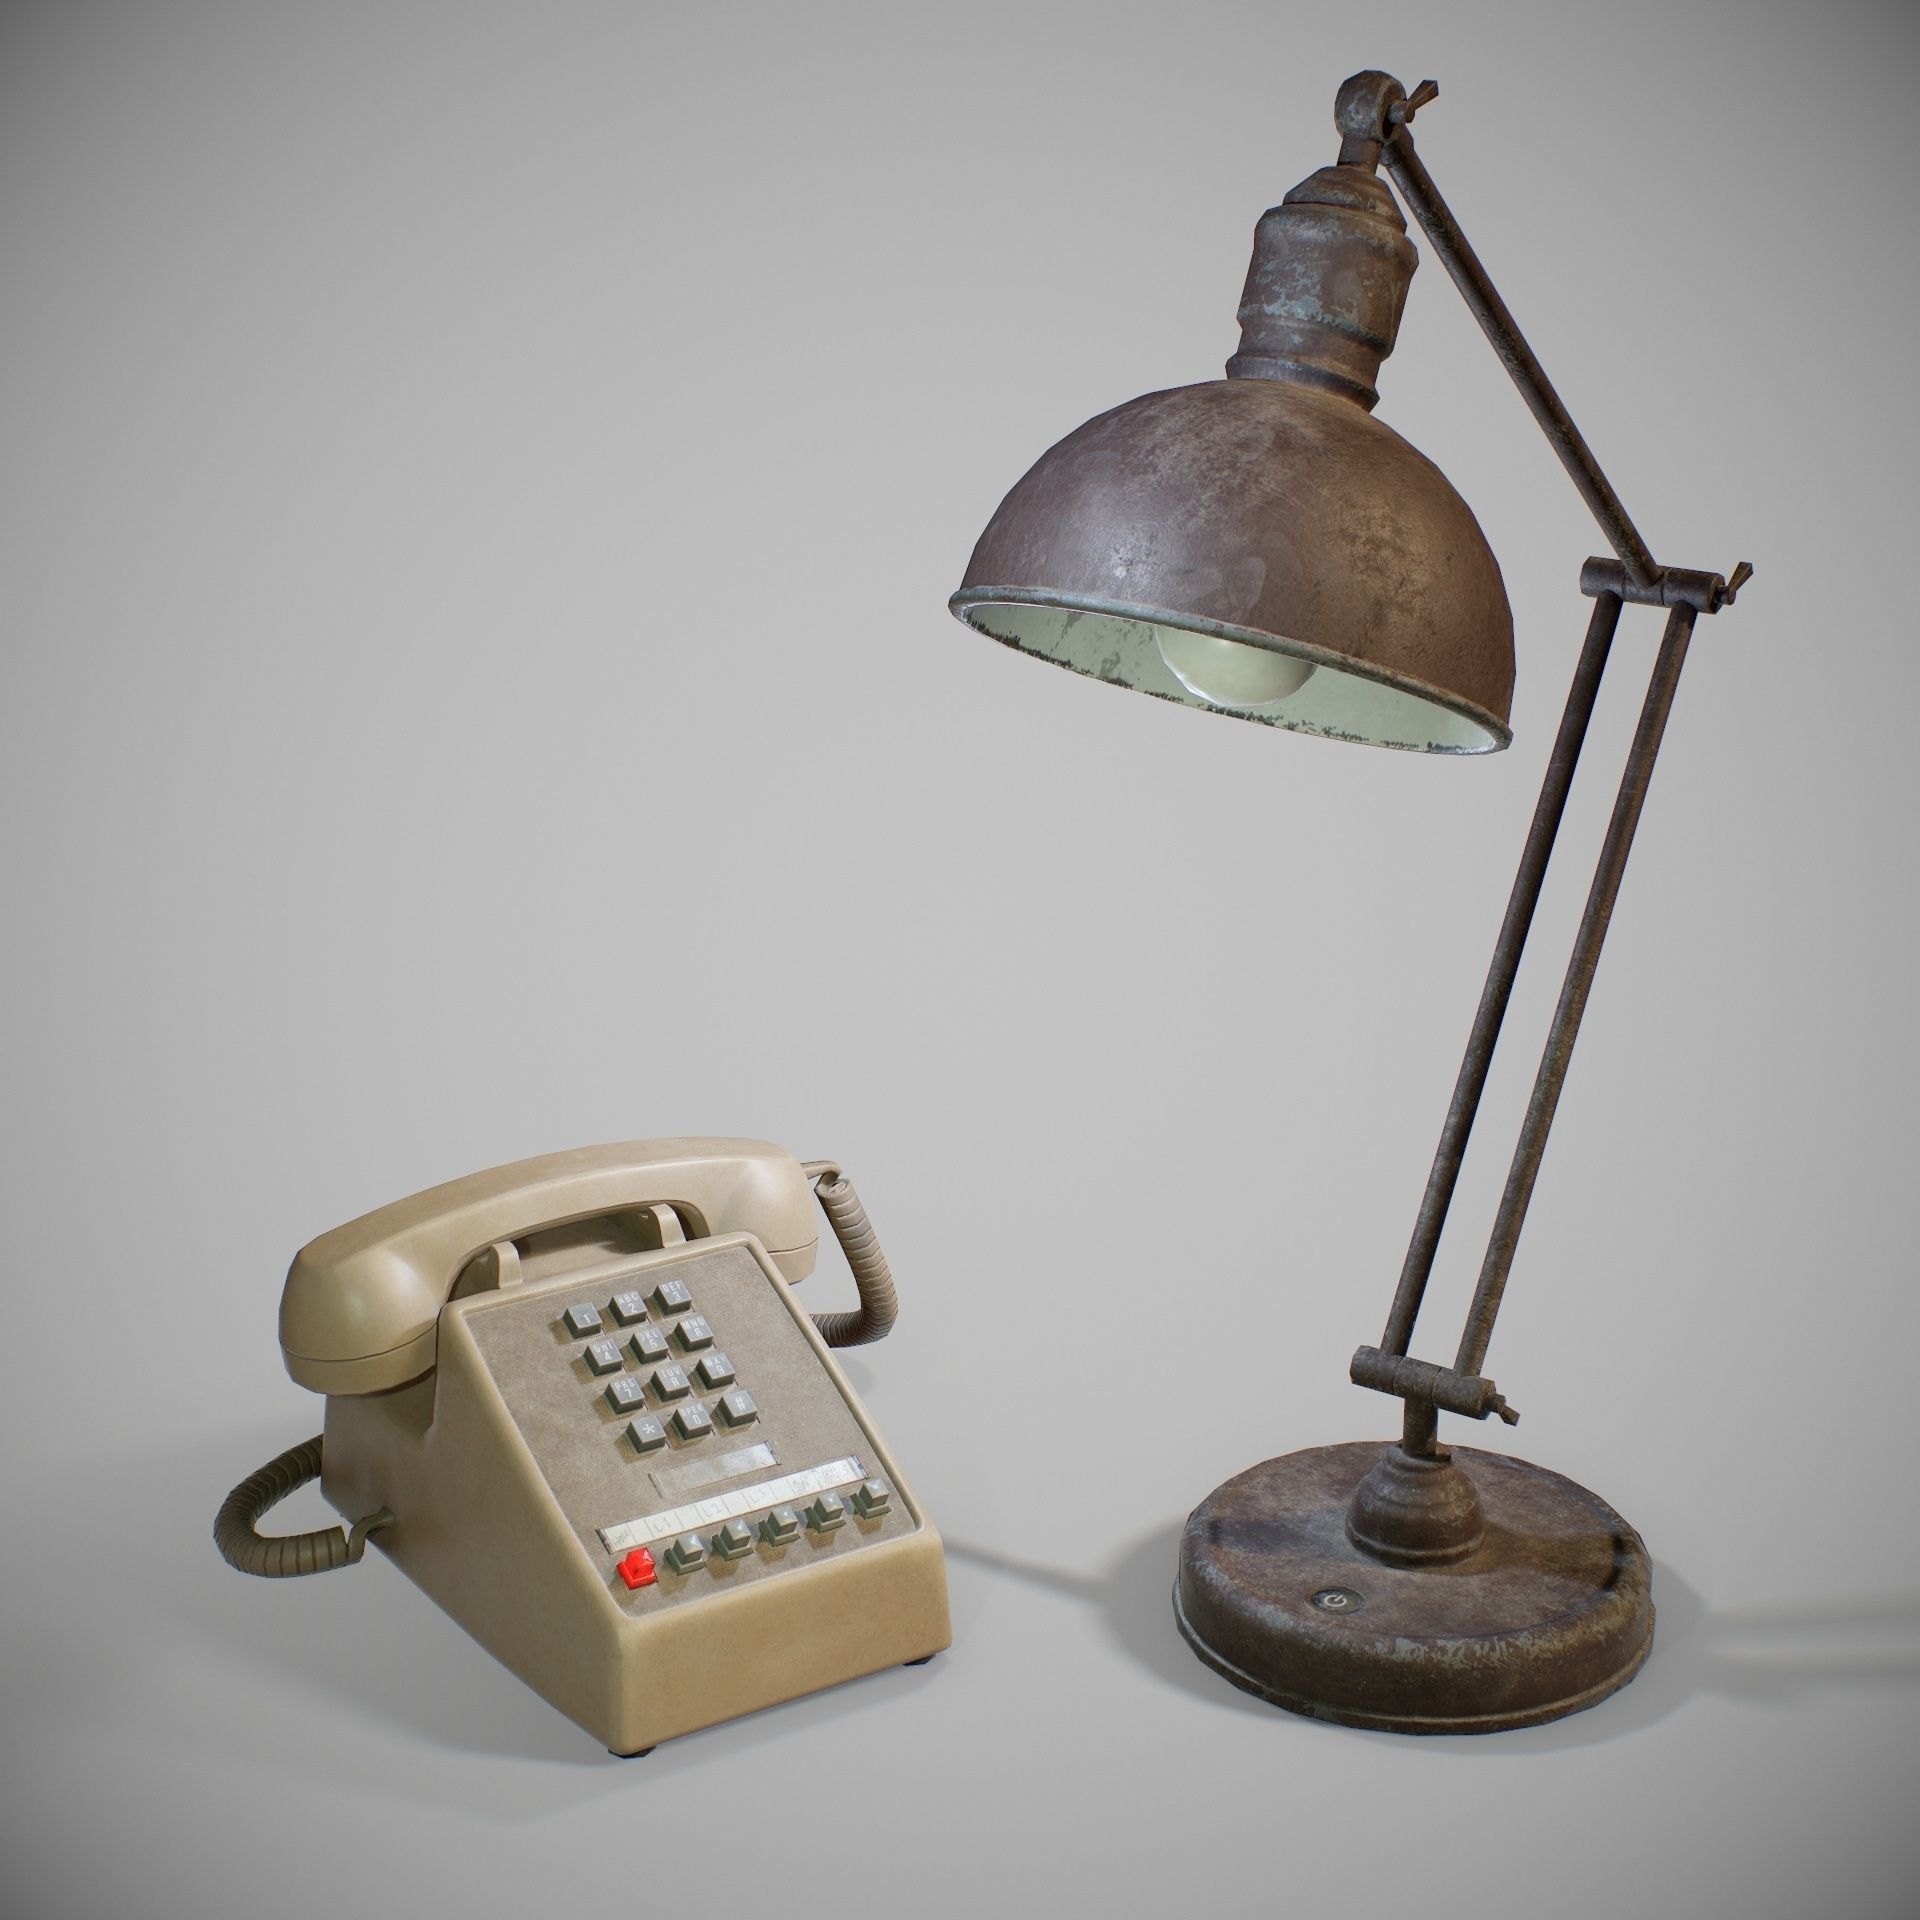 PBR Old Desk Lamp and Phone